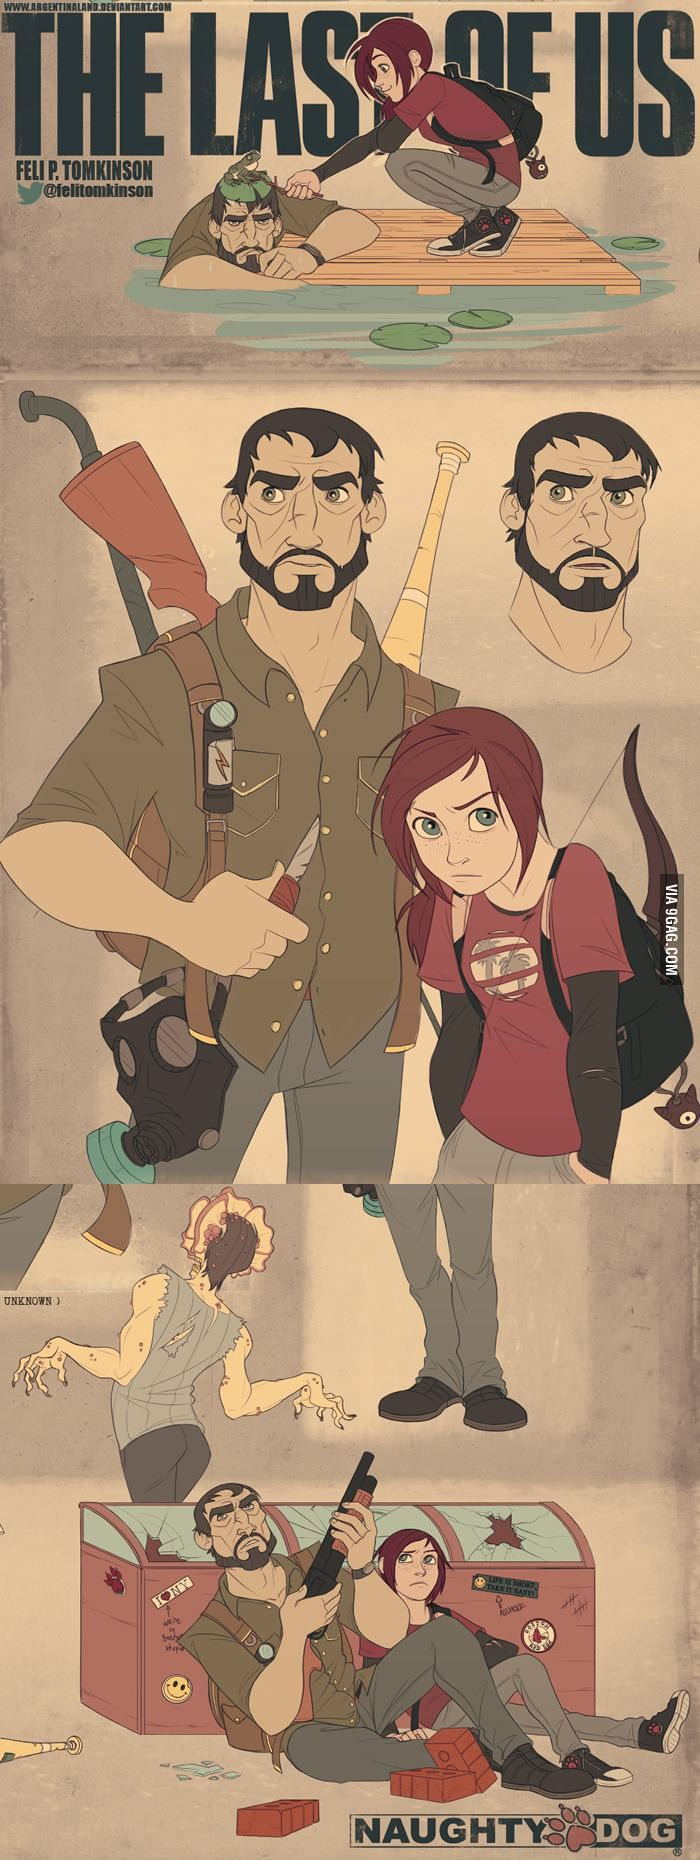 The Last of Us. Best game ever. Hands down.